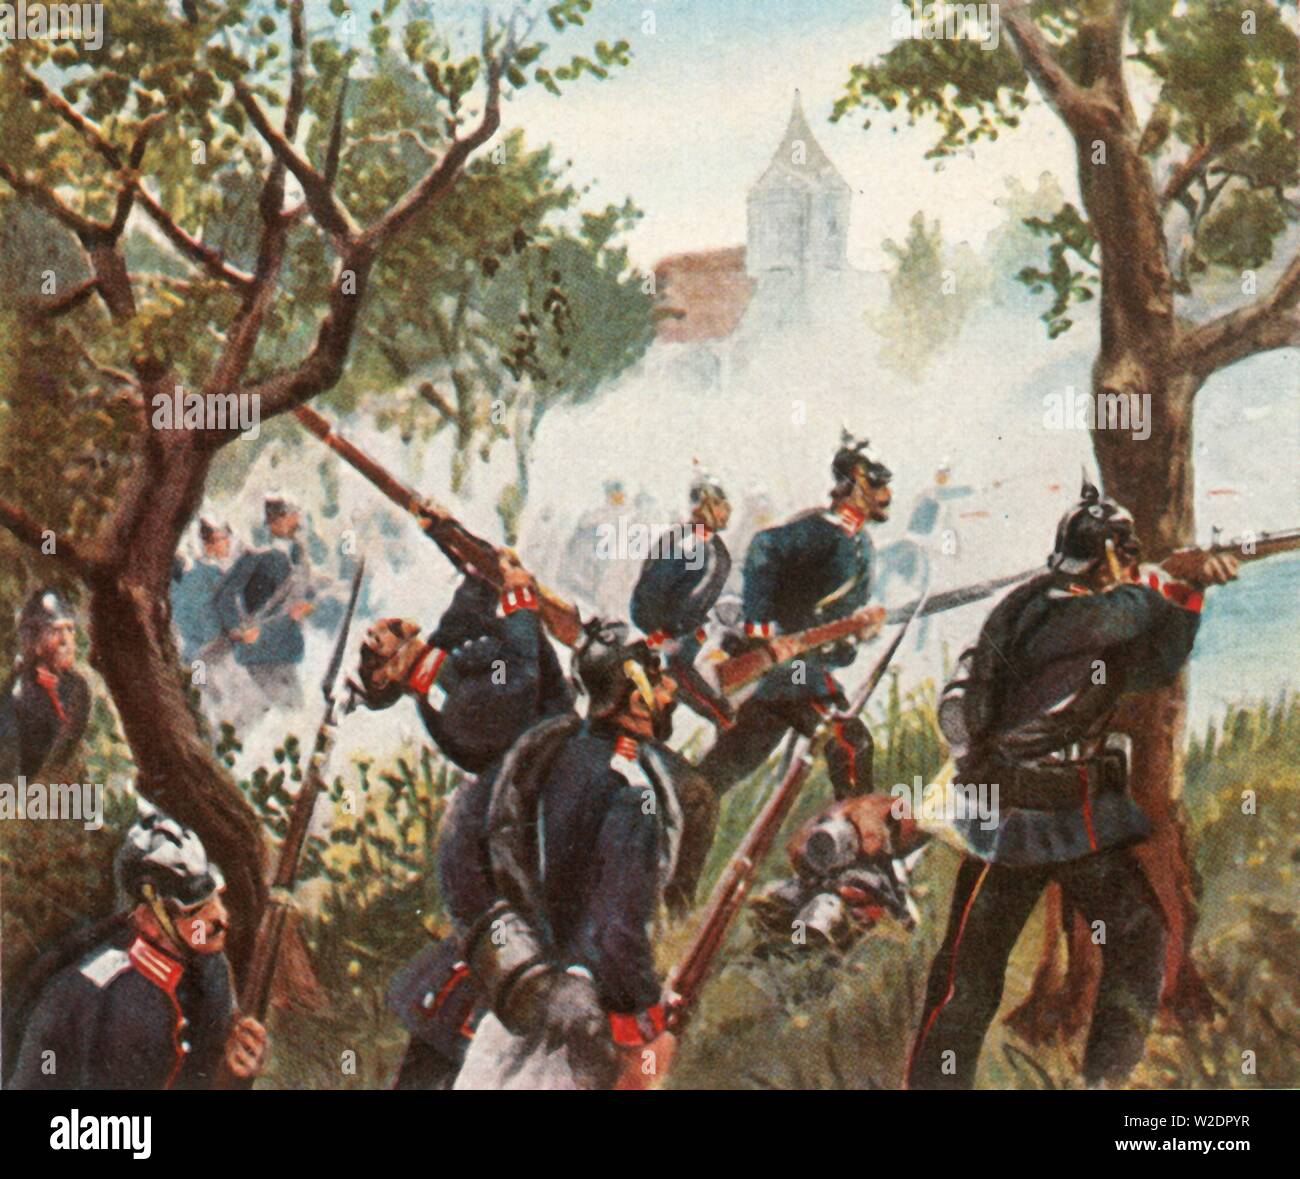 "The Battle of Königgratz, 3 July 1866, (1936). 'Die Schlacht Bei Königgratz, 3 Juli 1866'. The Battle of Königgrätz took place near Königgrätz in Bohemia (modern-day Hradec Králové in the Czech Republic). It was the decisive battle of the Austro-Prussian War in which the Kingdom of Prussia defeated the Austrian Empire. From ""Bilder Deutscher Geschichte"", (Pictures of German History), No.12, cigarette card album. [Cigaretten-Bilderdienst, Altona-Bahrenfeld, Hamburg, Germany, 1936] - Stock Image"